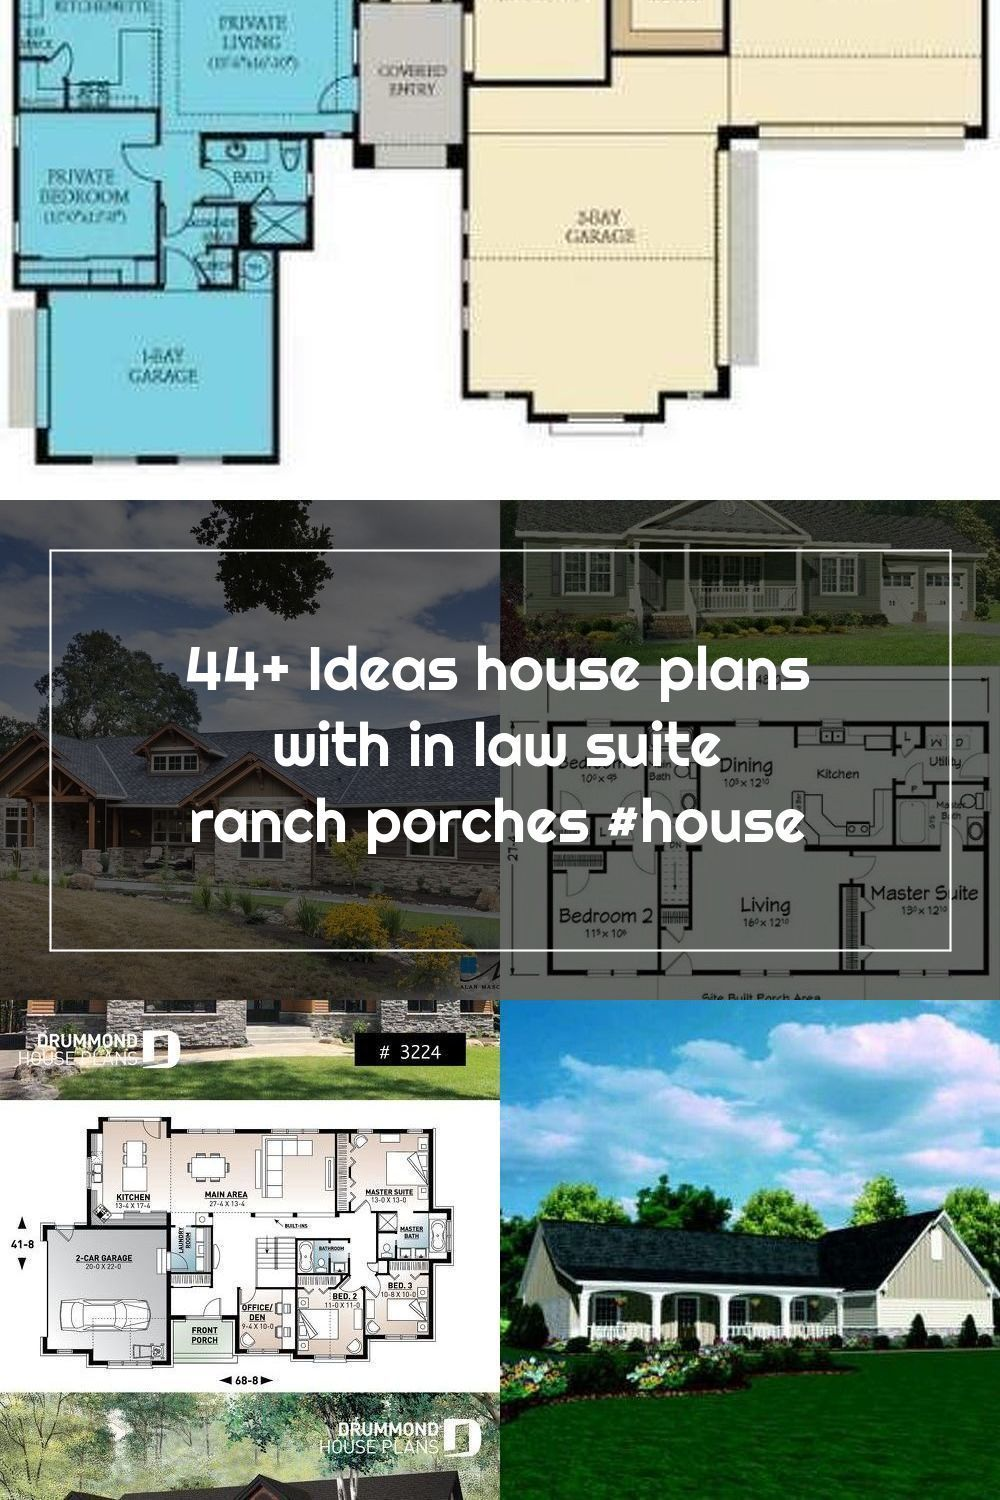 Health Happiness And Health Promotion I M A Girl Writing An Article In 2020 In Law Suite House Plans Ranch House Plans